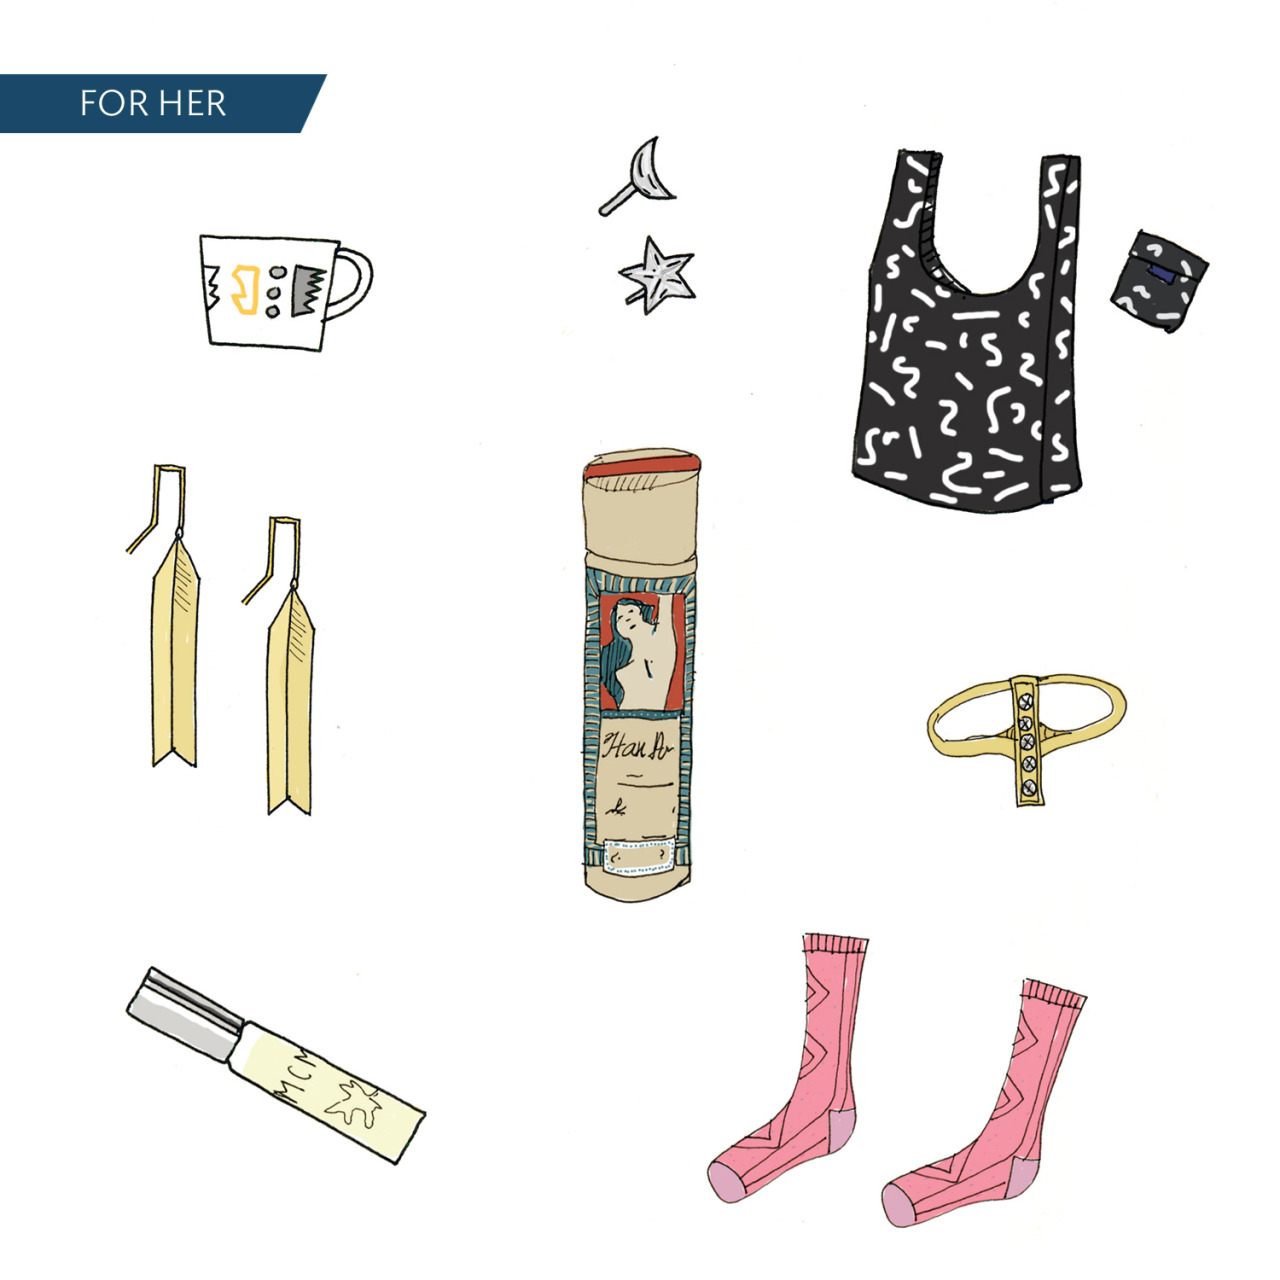 Chau's V-Day picks. 1. Alyson Fox White Noise Mug 2. Odette NY Moon + Star Studs 3. Baggu Black Paint Reusable Bag 3. Satomi Kawakita Diamond Bar Ring 4. Hansel from Basel Cable Crew Socks 5. MCMC Fragrances Garden 5. Fay Andrada Torni Earrings 6. Lulu Organics Hair Powder